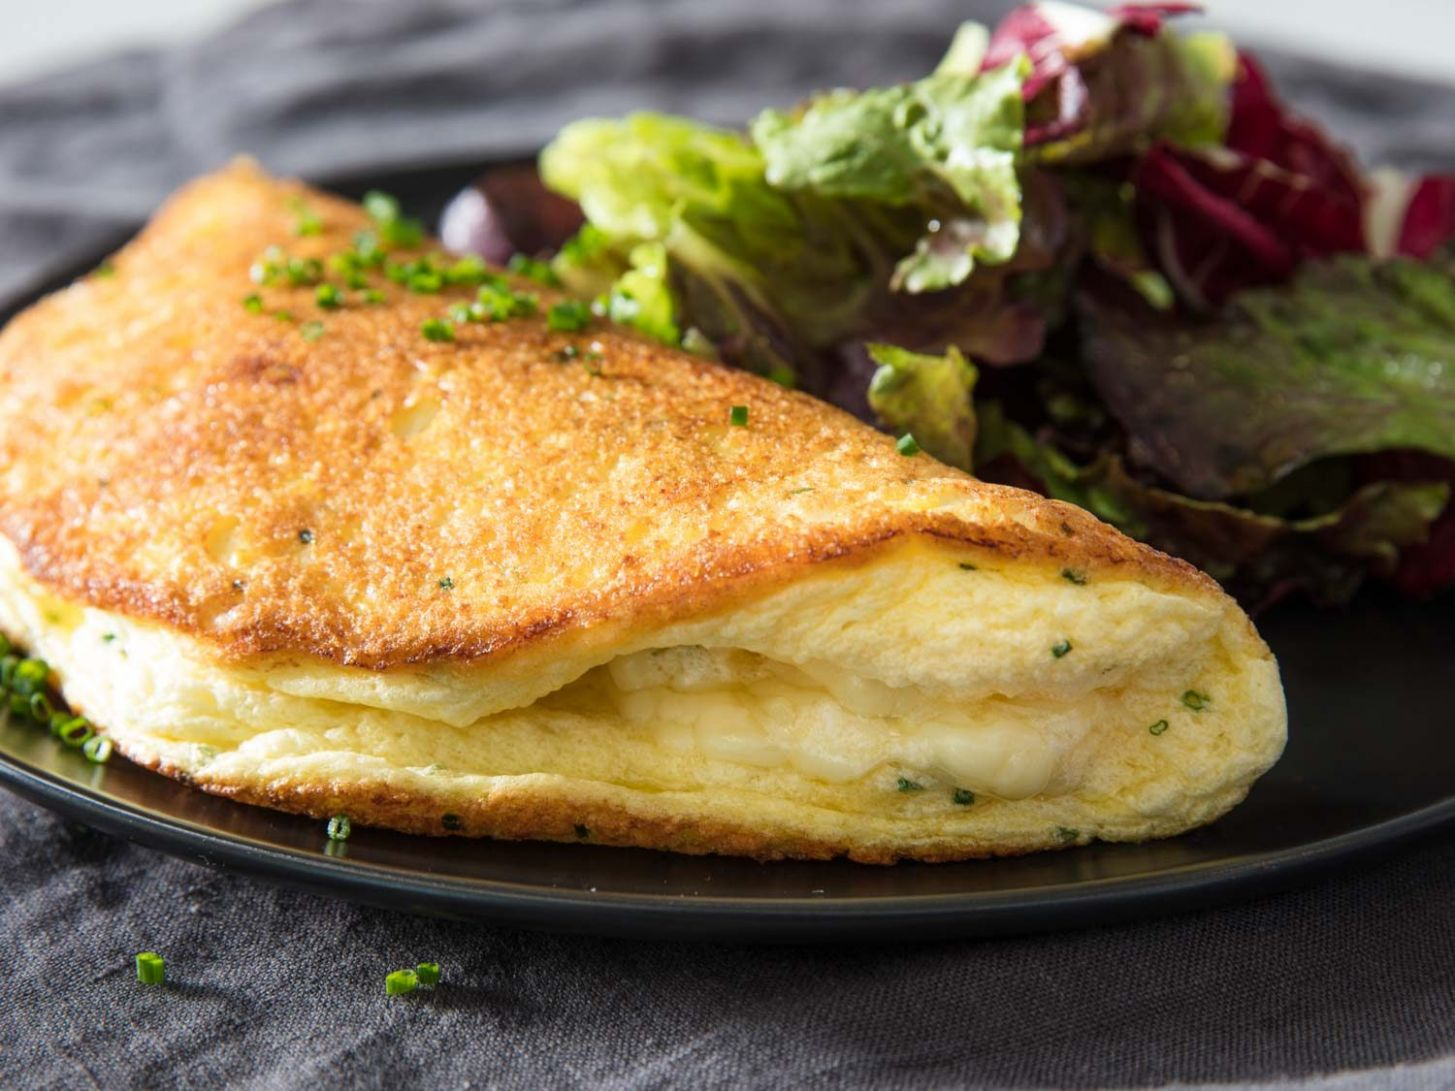 Soufflé Omelette With Cheese Recipe - Egg Omelette Recipe